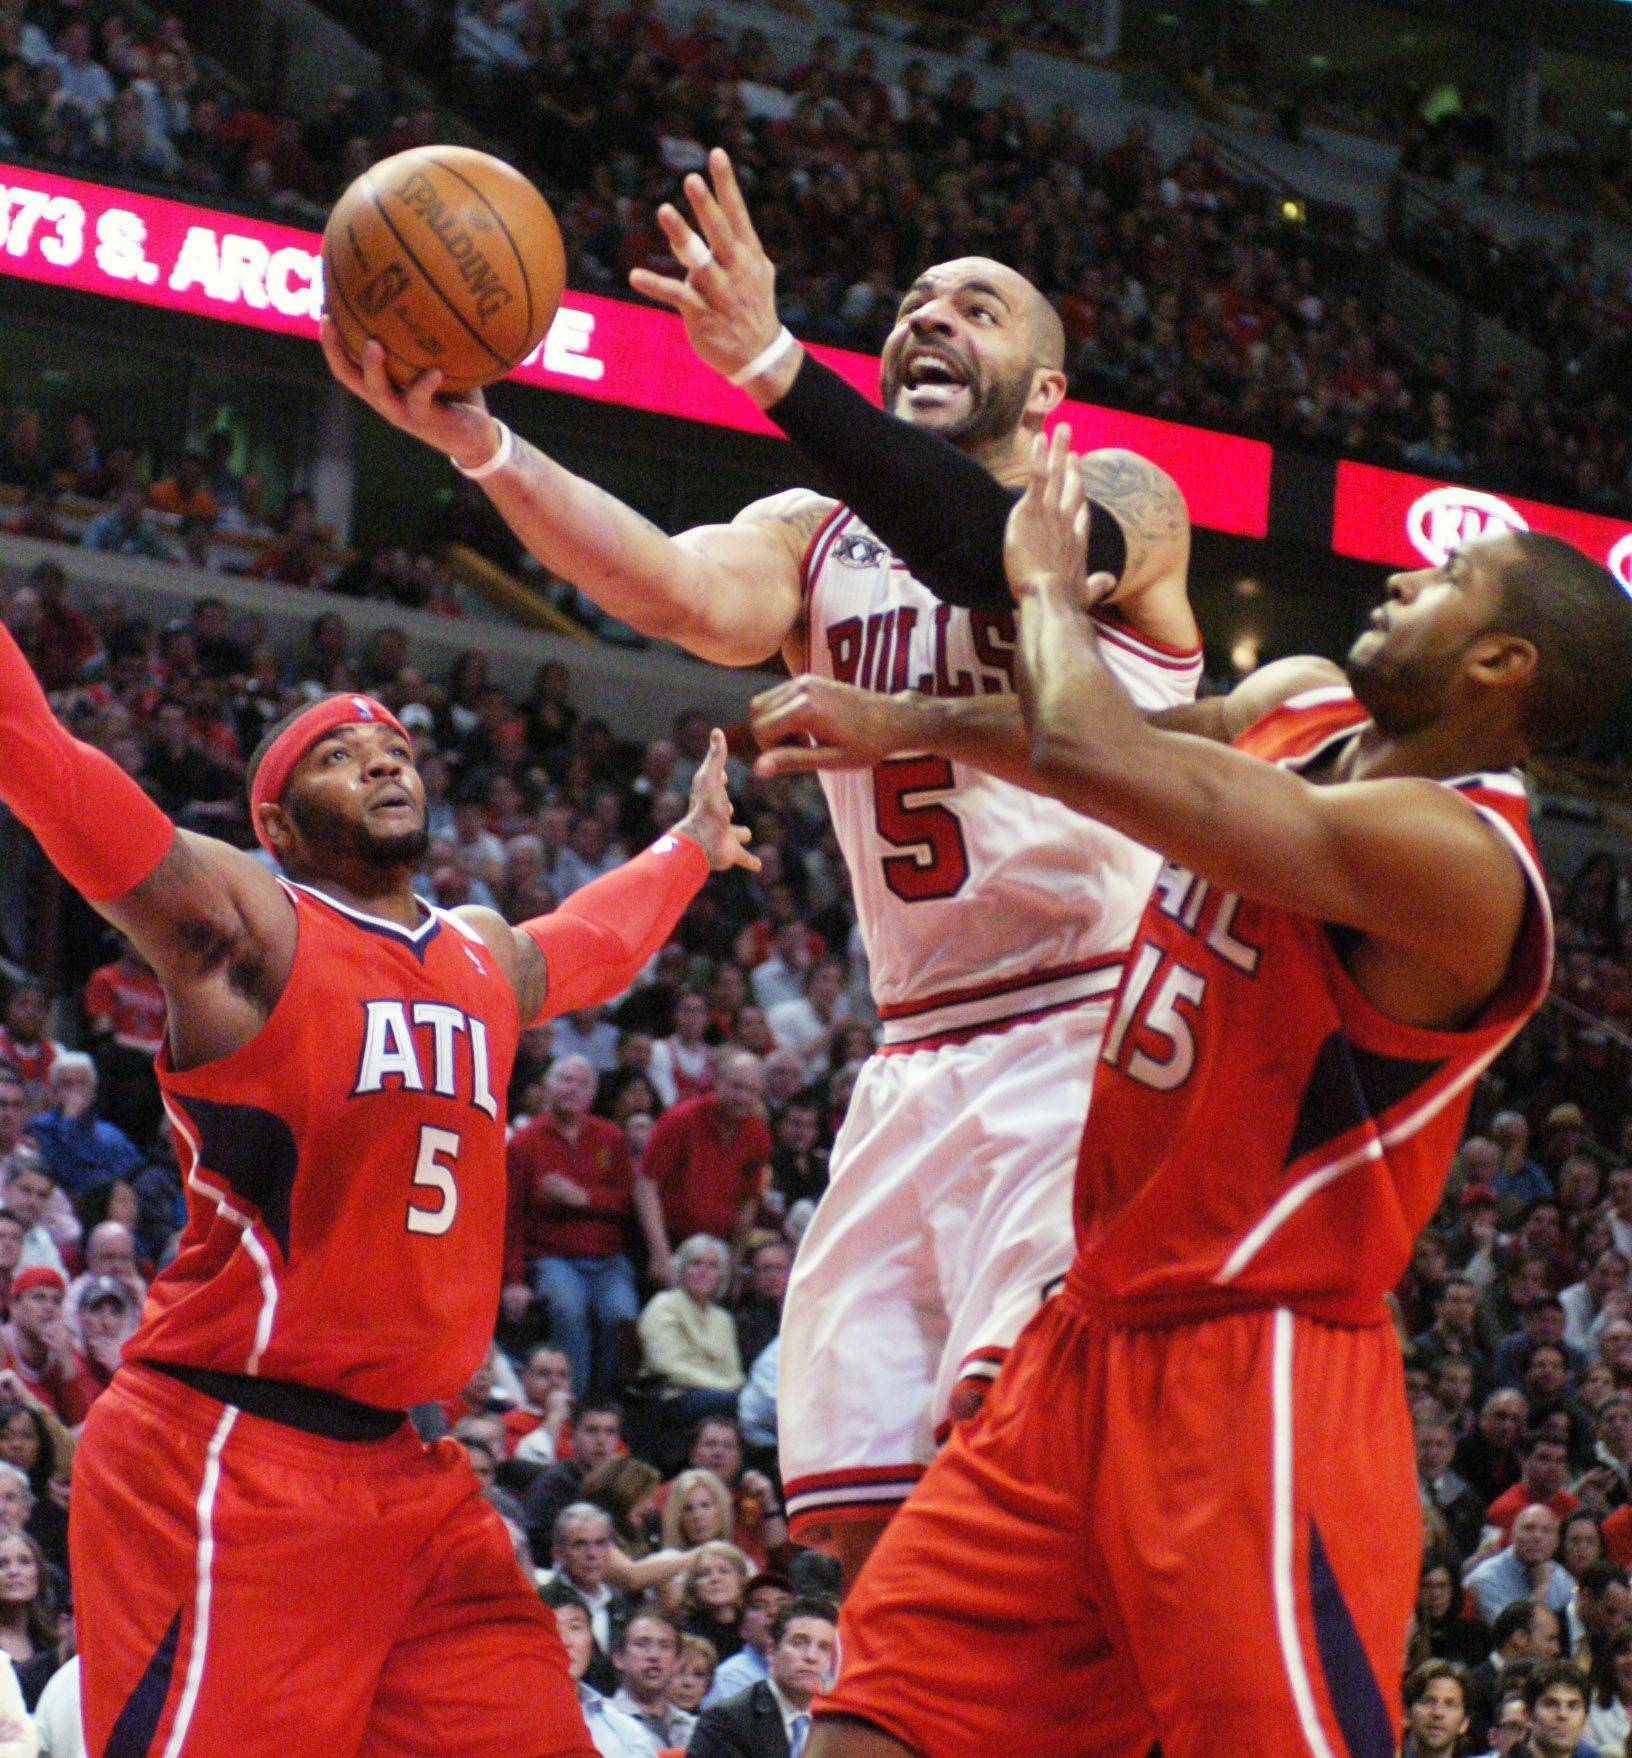 Carlos Boozer of the Bulls drives between Josh Smith, left, and Al Harford of the Hawks during Wednesday's game.